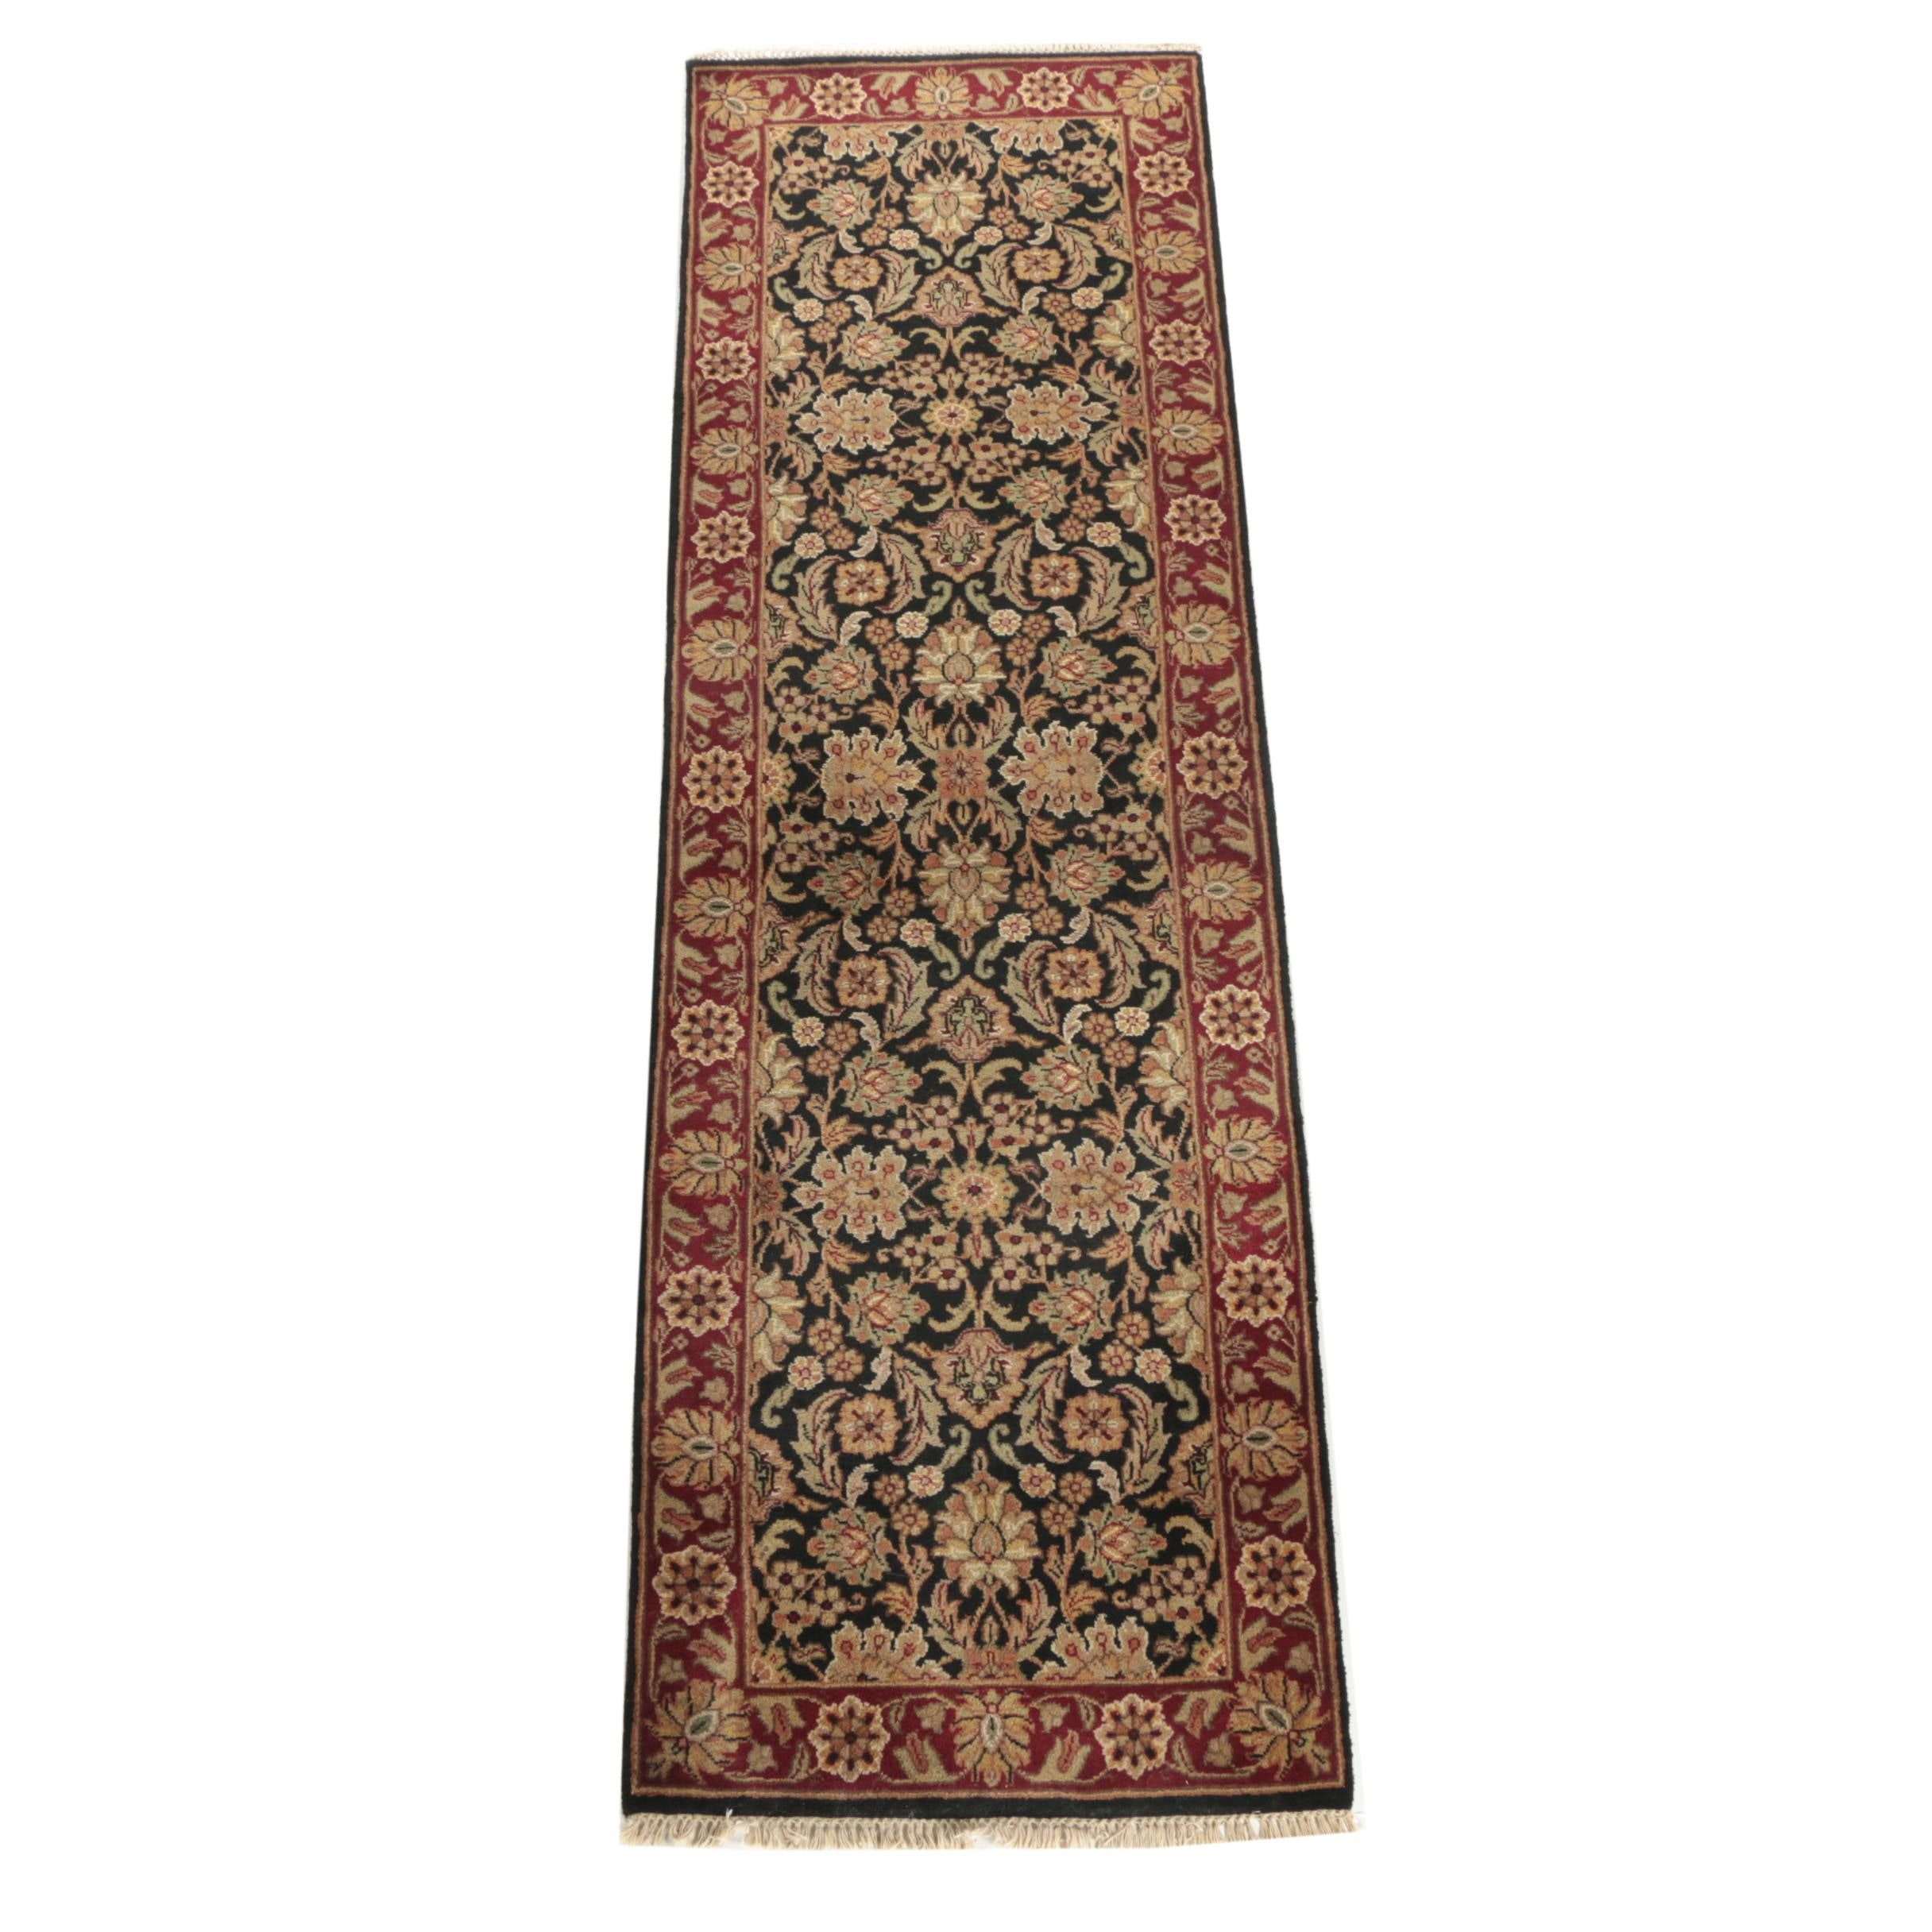 Hand-Knotted Indo-Persian Herati Carpet Runner